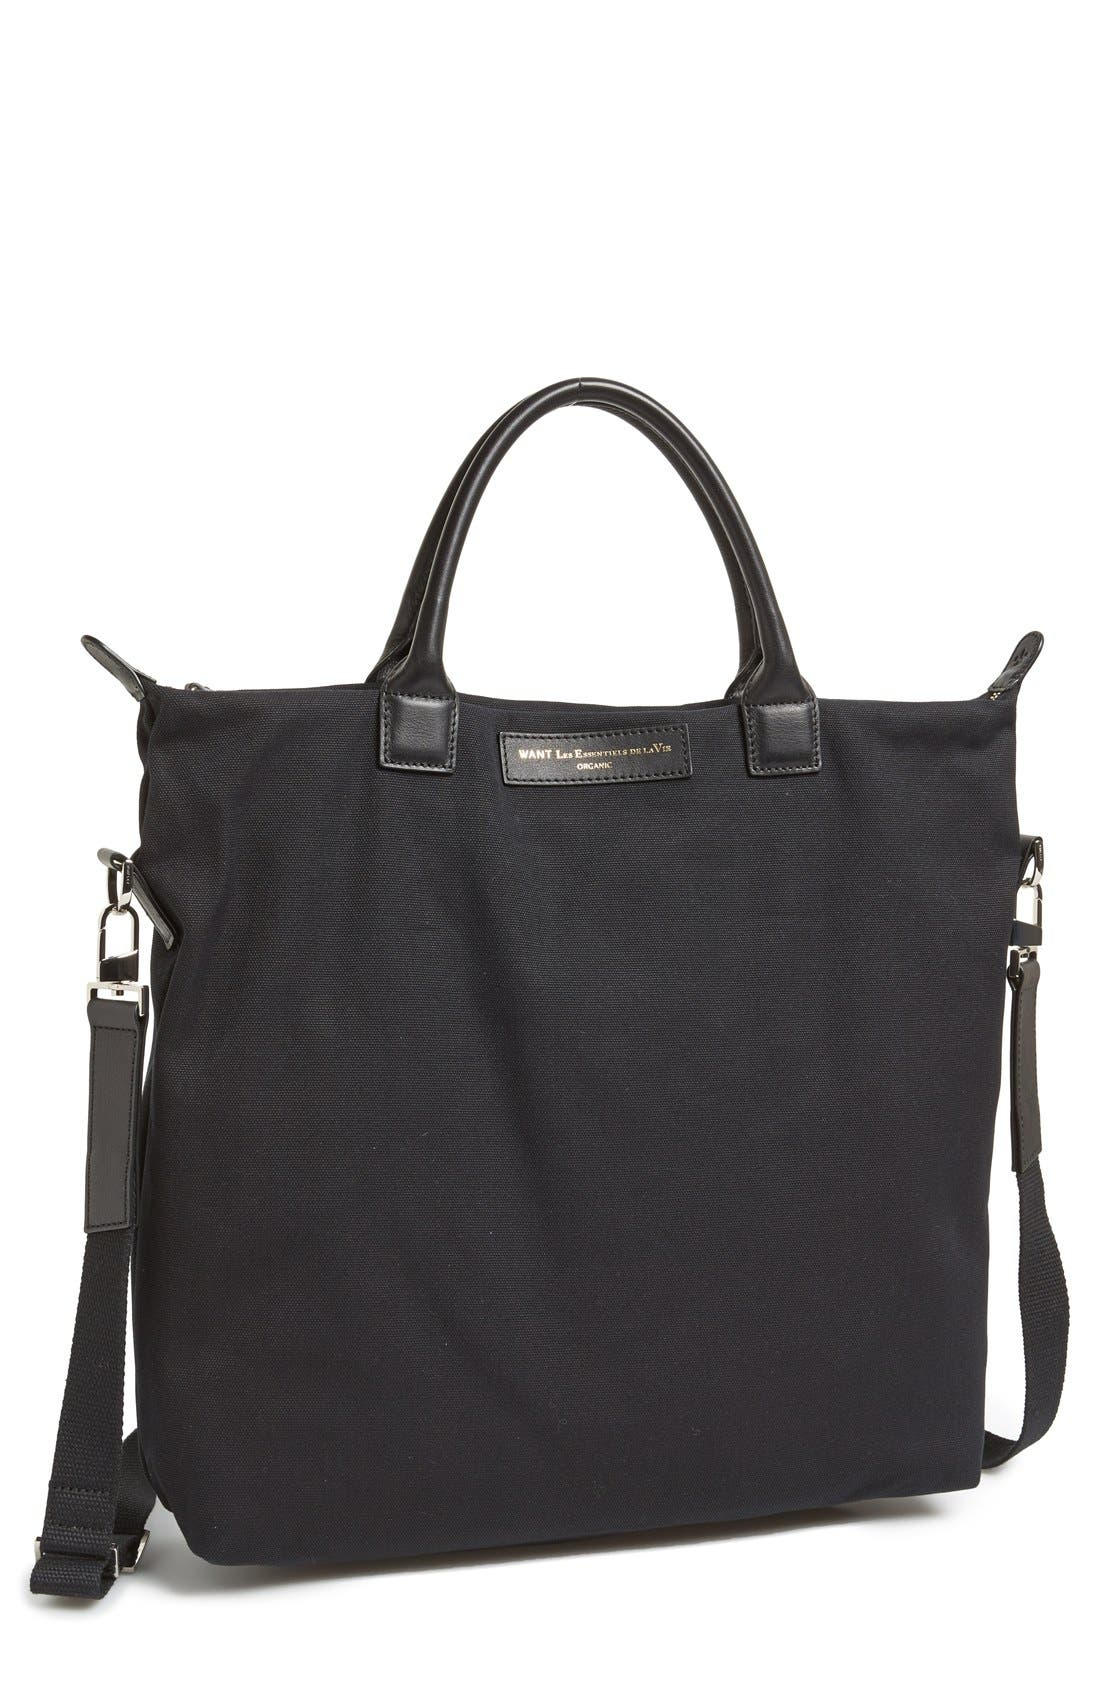 Main Image - WANT LES ESSENTIELS 'O'Hare' Tote Bag